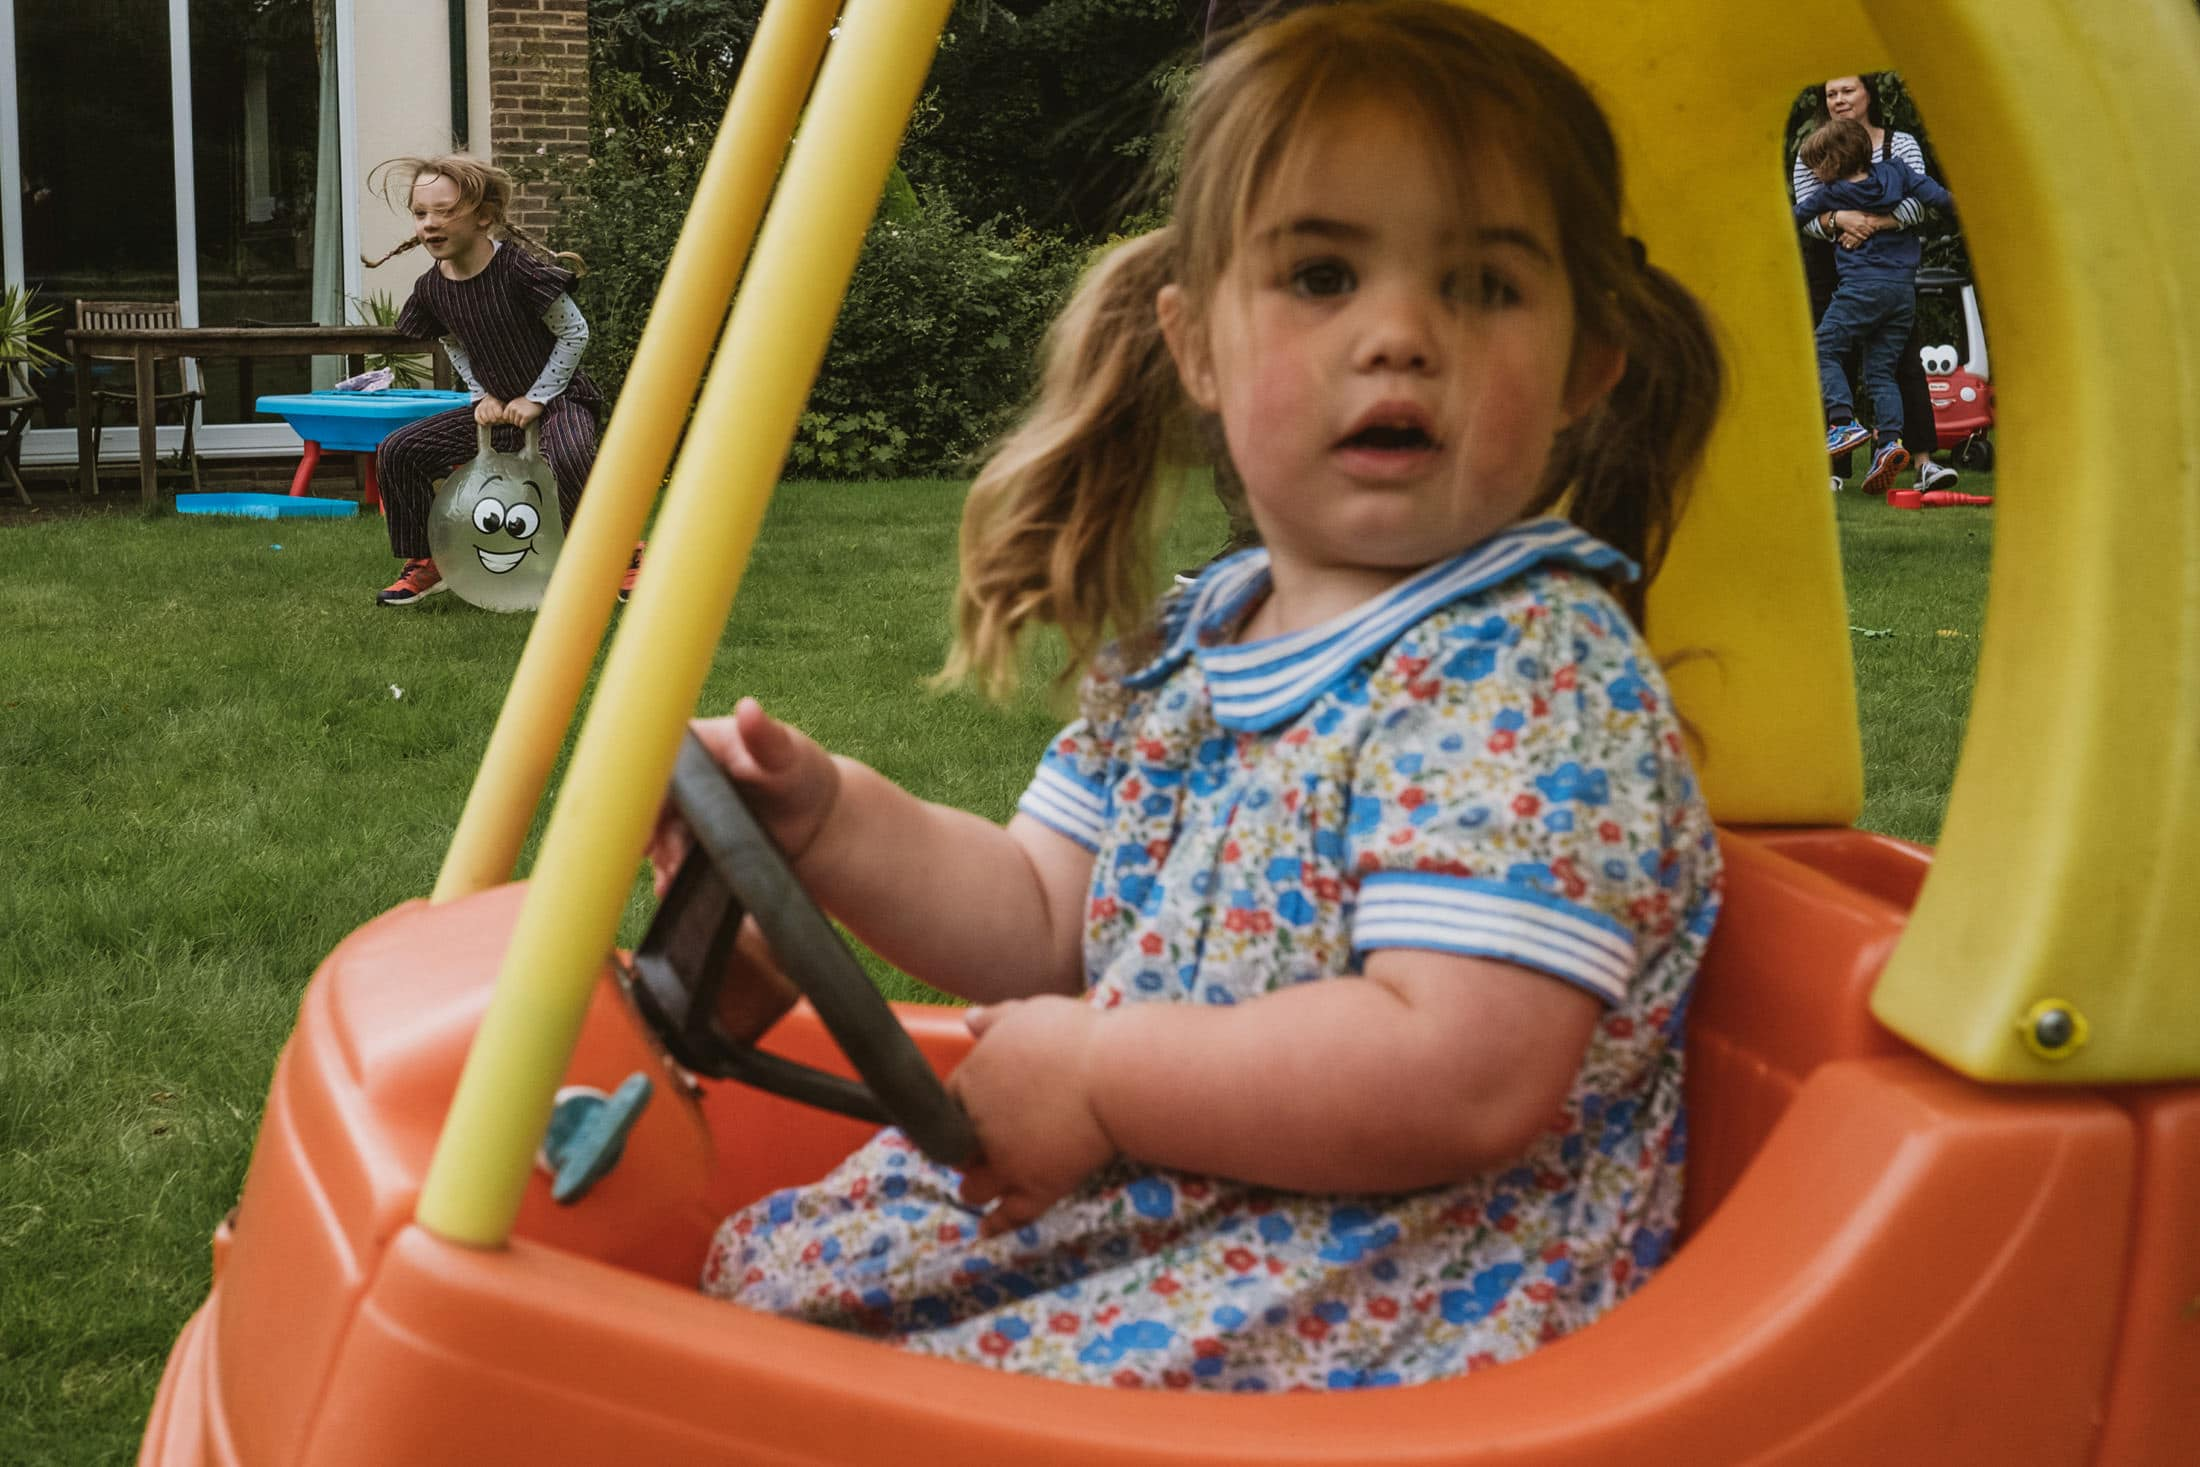 little girl in toy car and other children in the background. Documentary family photography